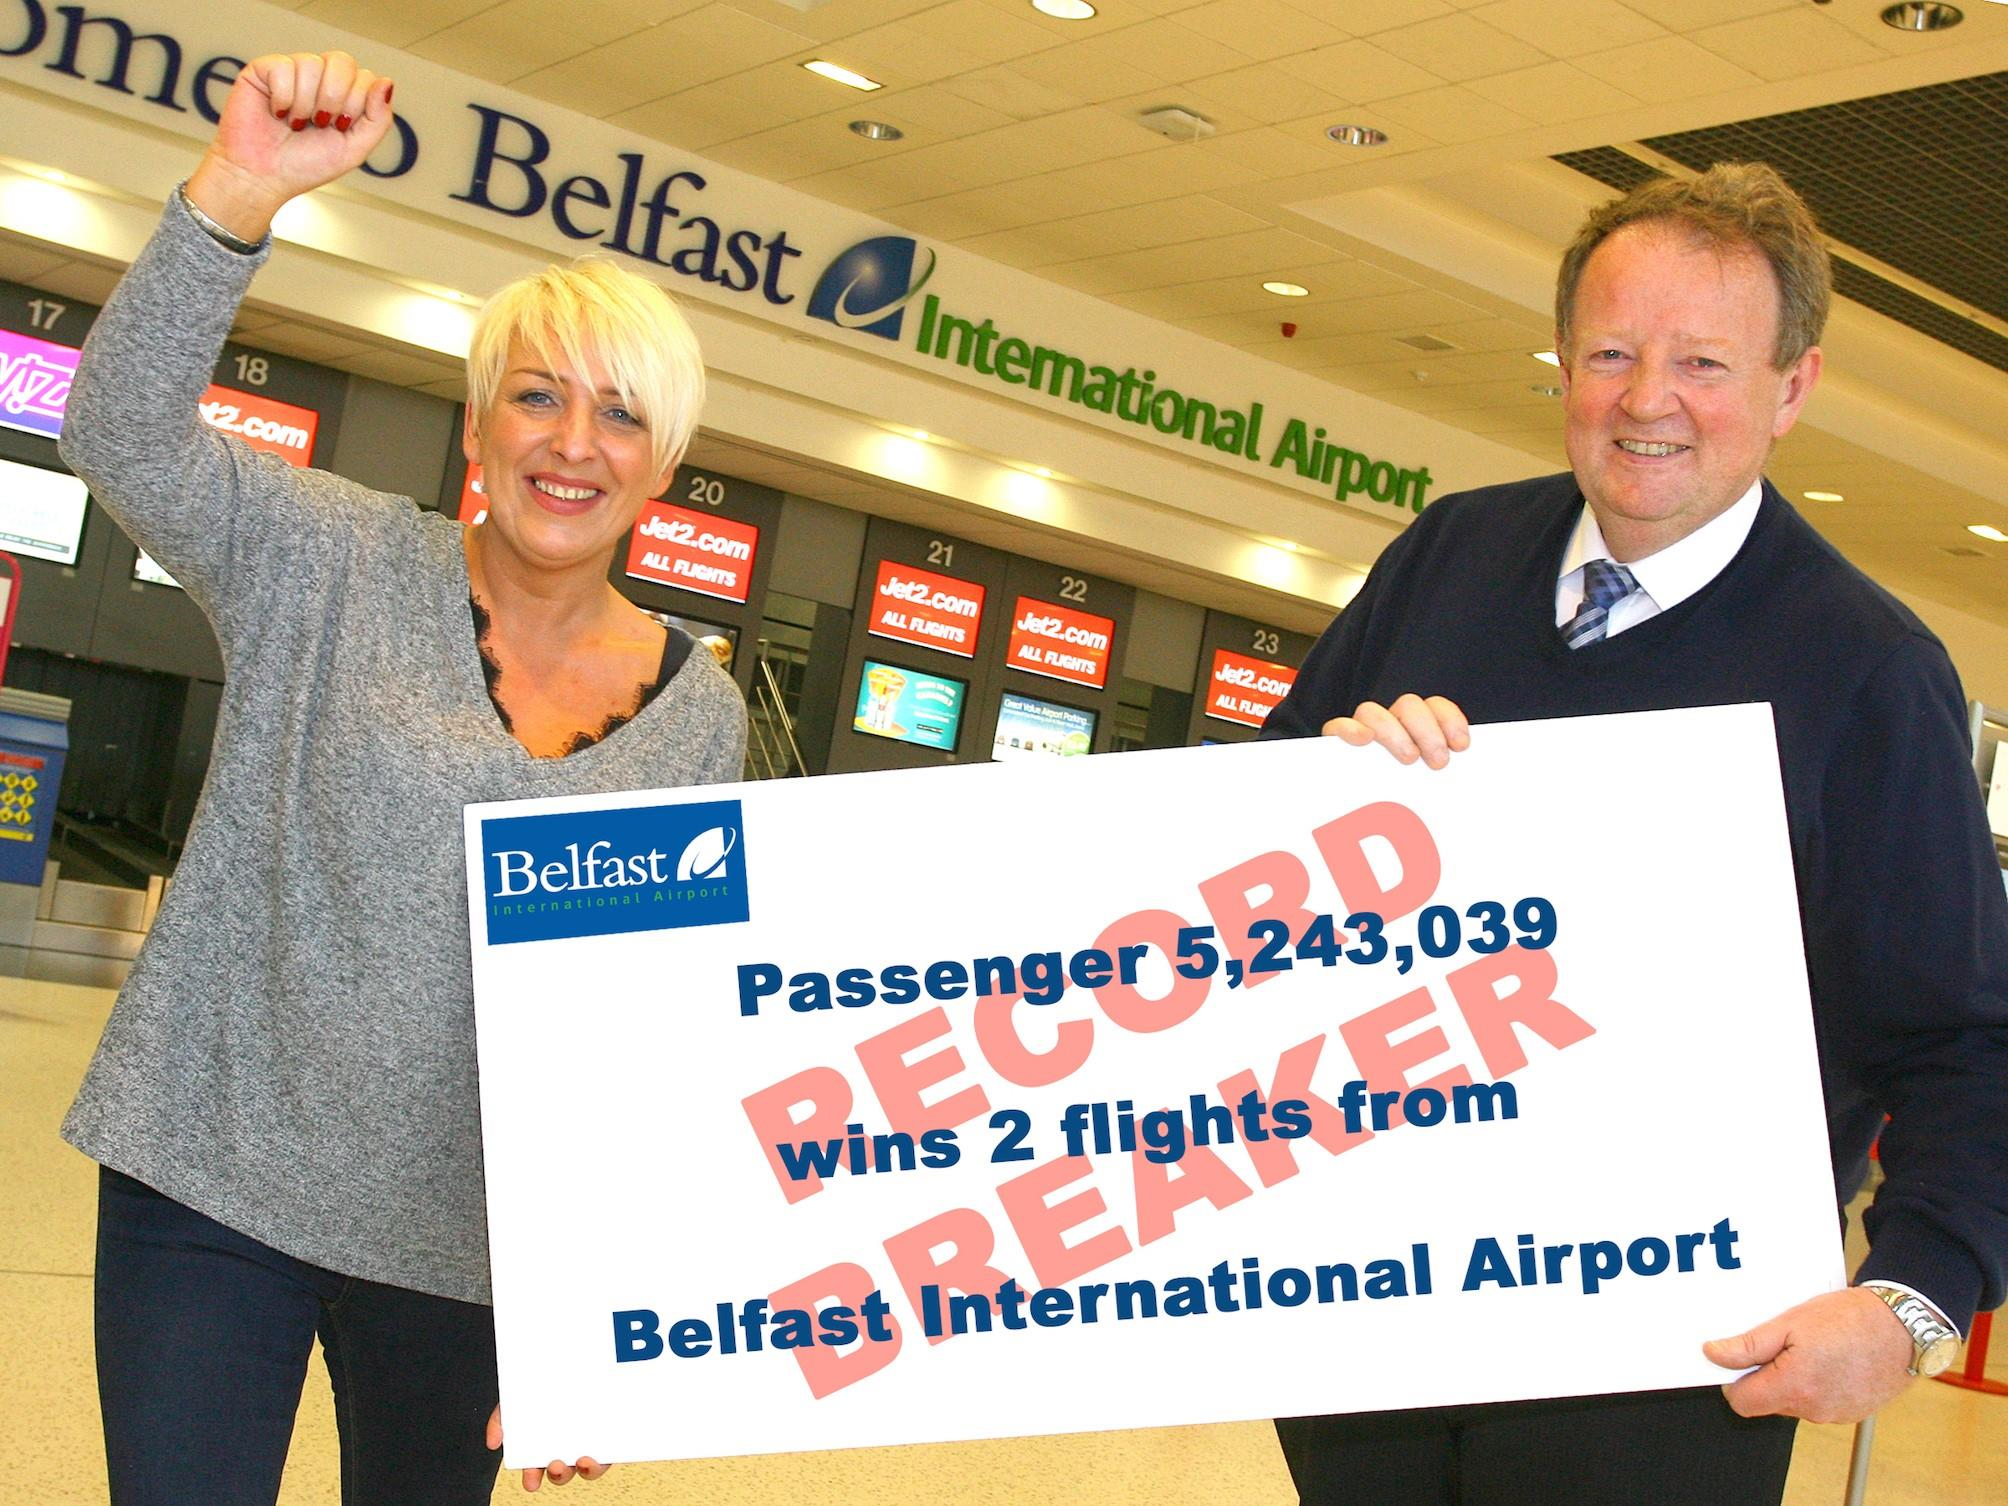 Record Breaking Passenger Numbers At Belfast International Airport